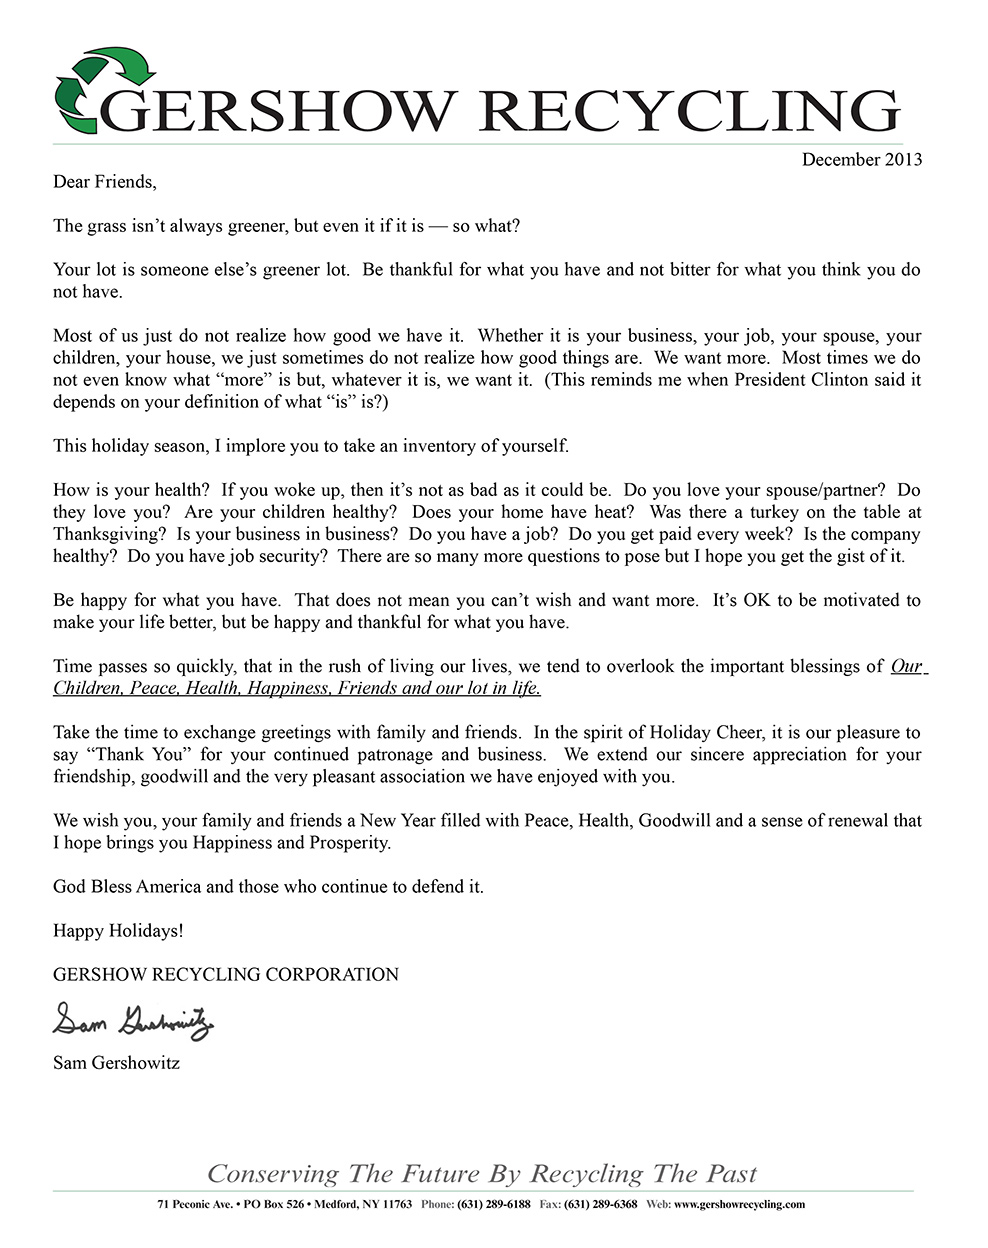 December 2013 Holiday Letter